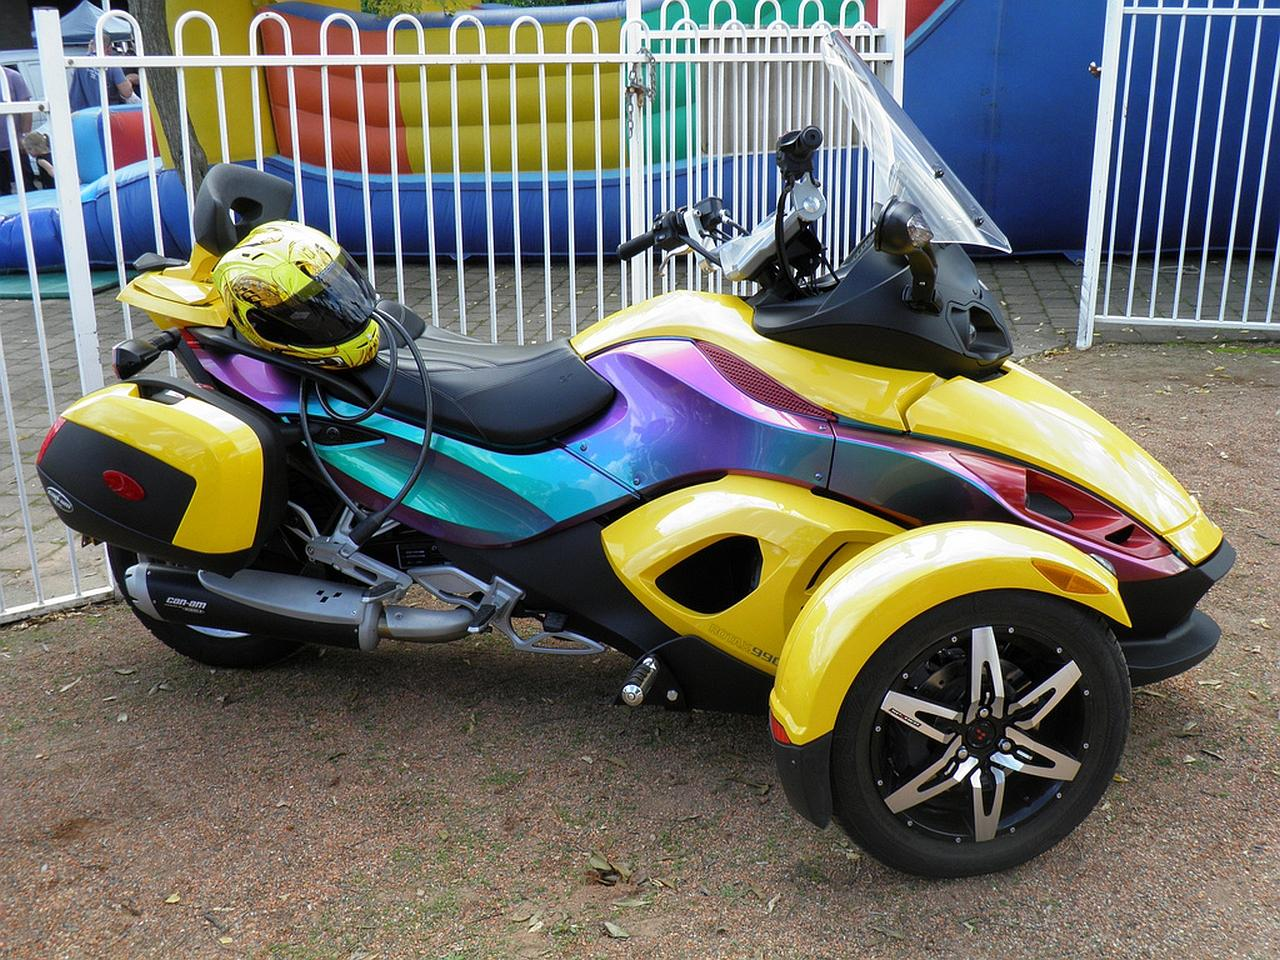 Can-Am Spyder wallpapers HD quality